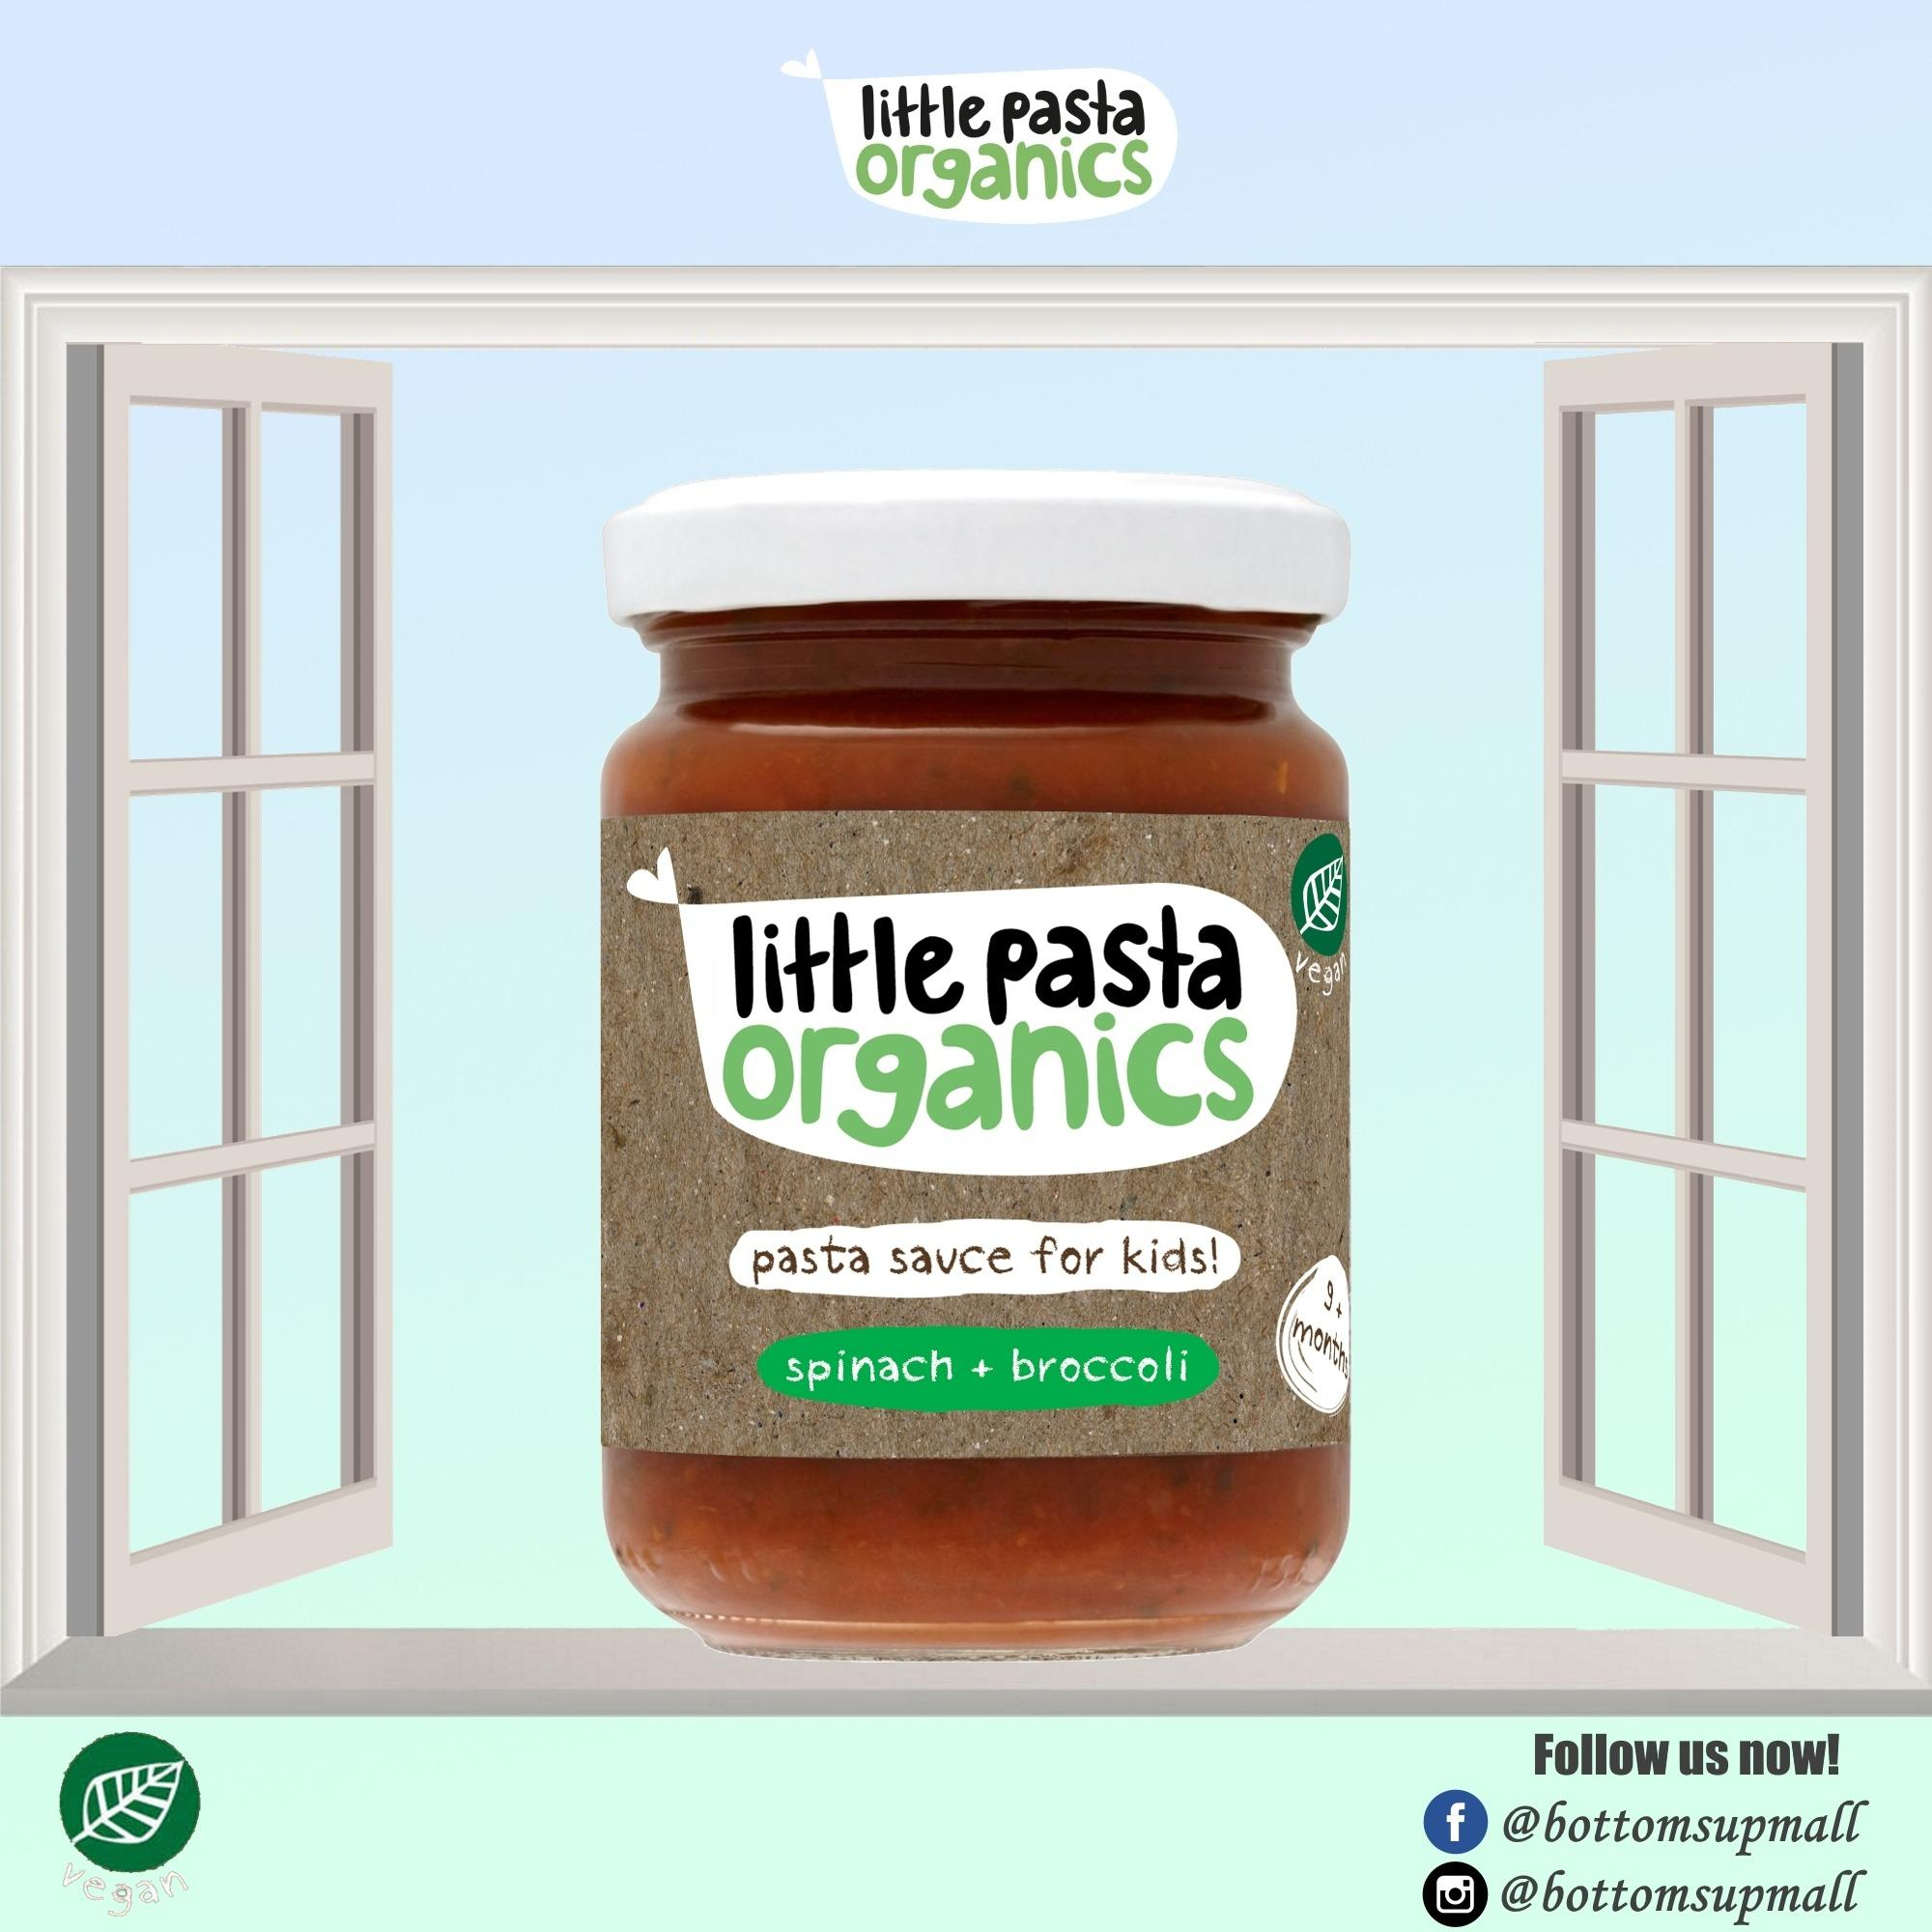 Discounted Expiry 26 6 2019 4 X Spinach Broccoli Pasta Sauce From 9Mths Old